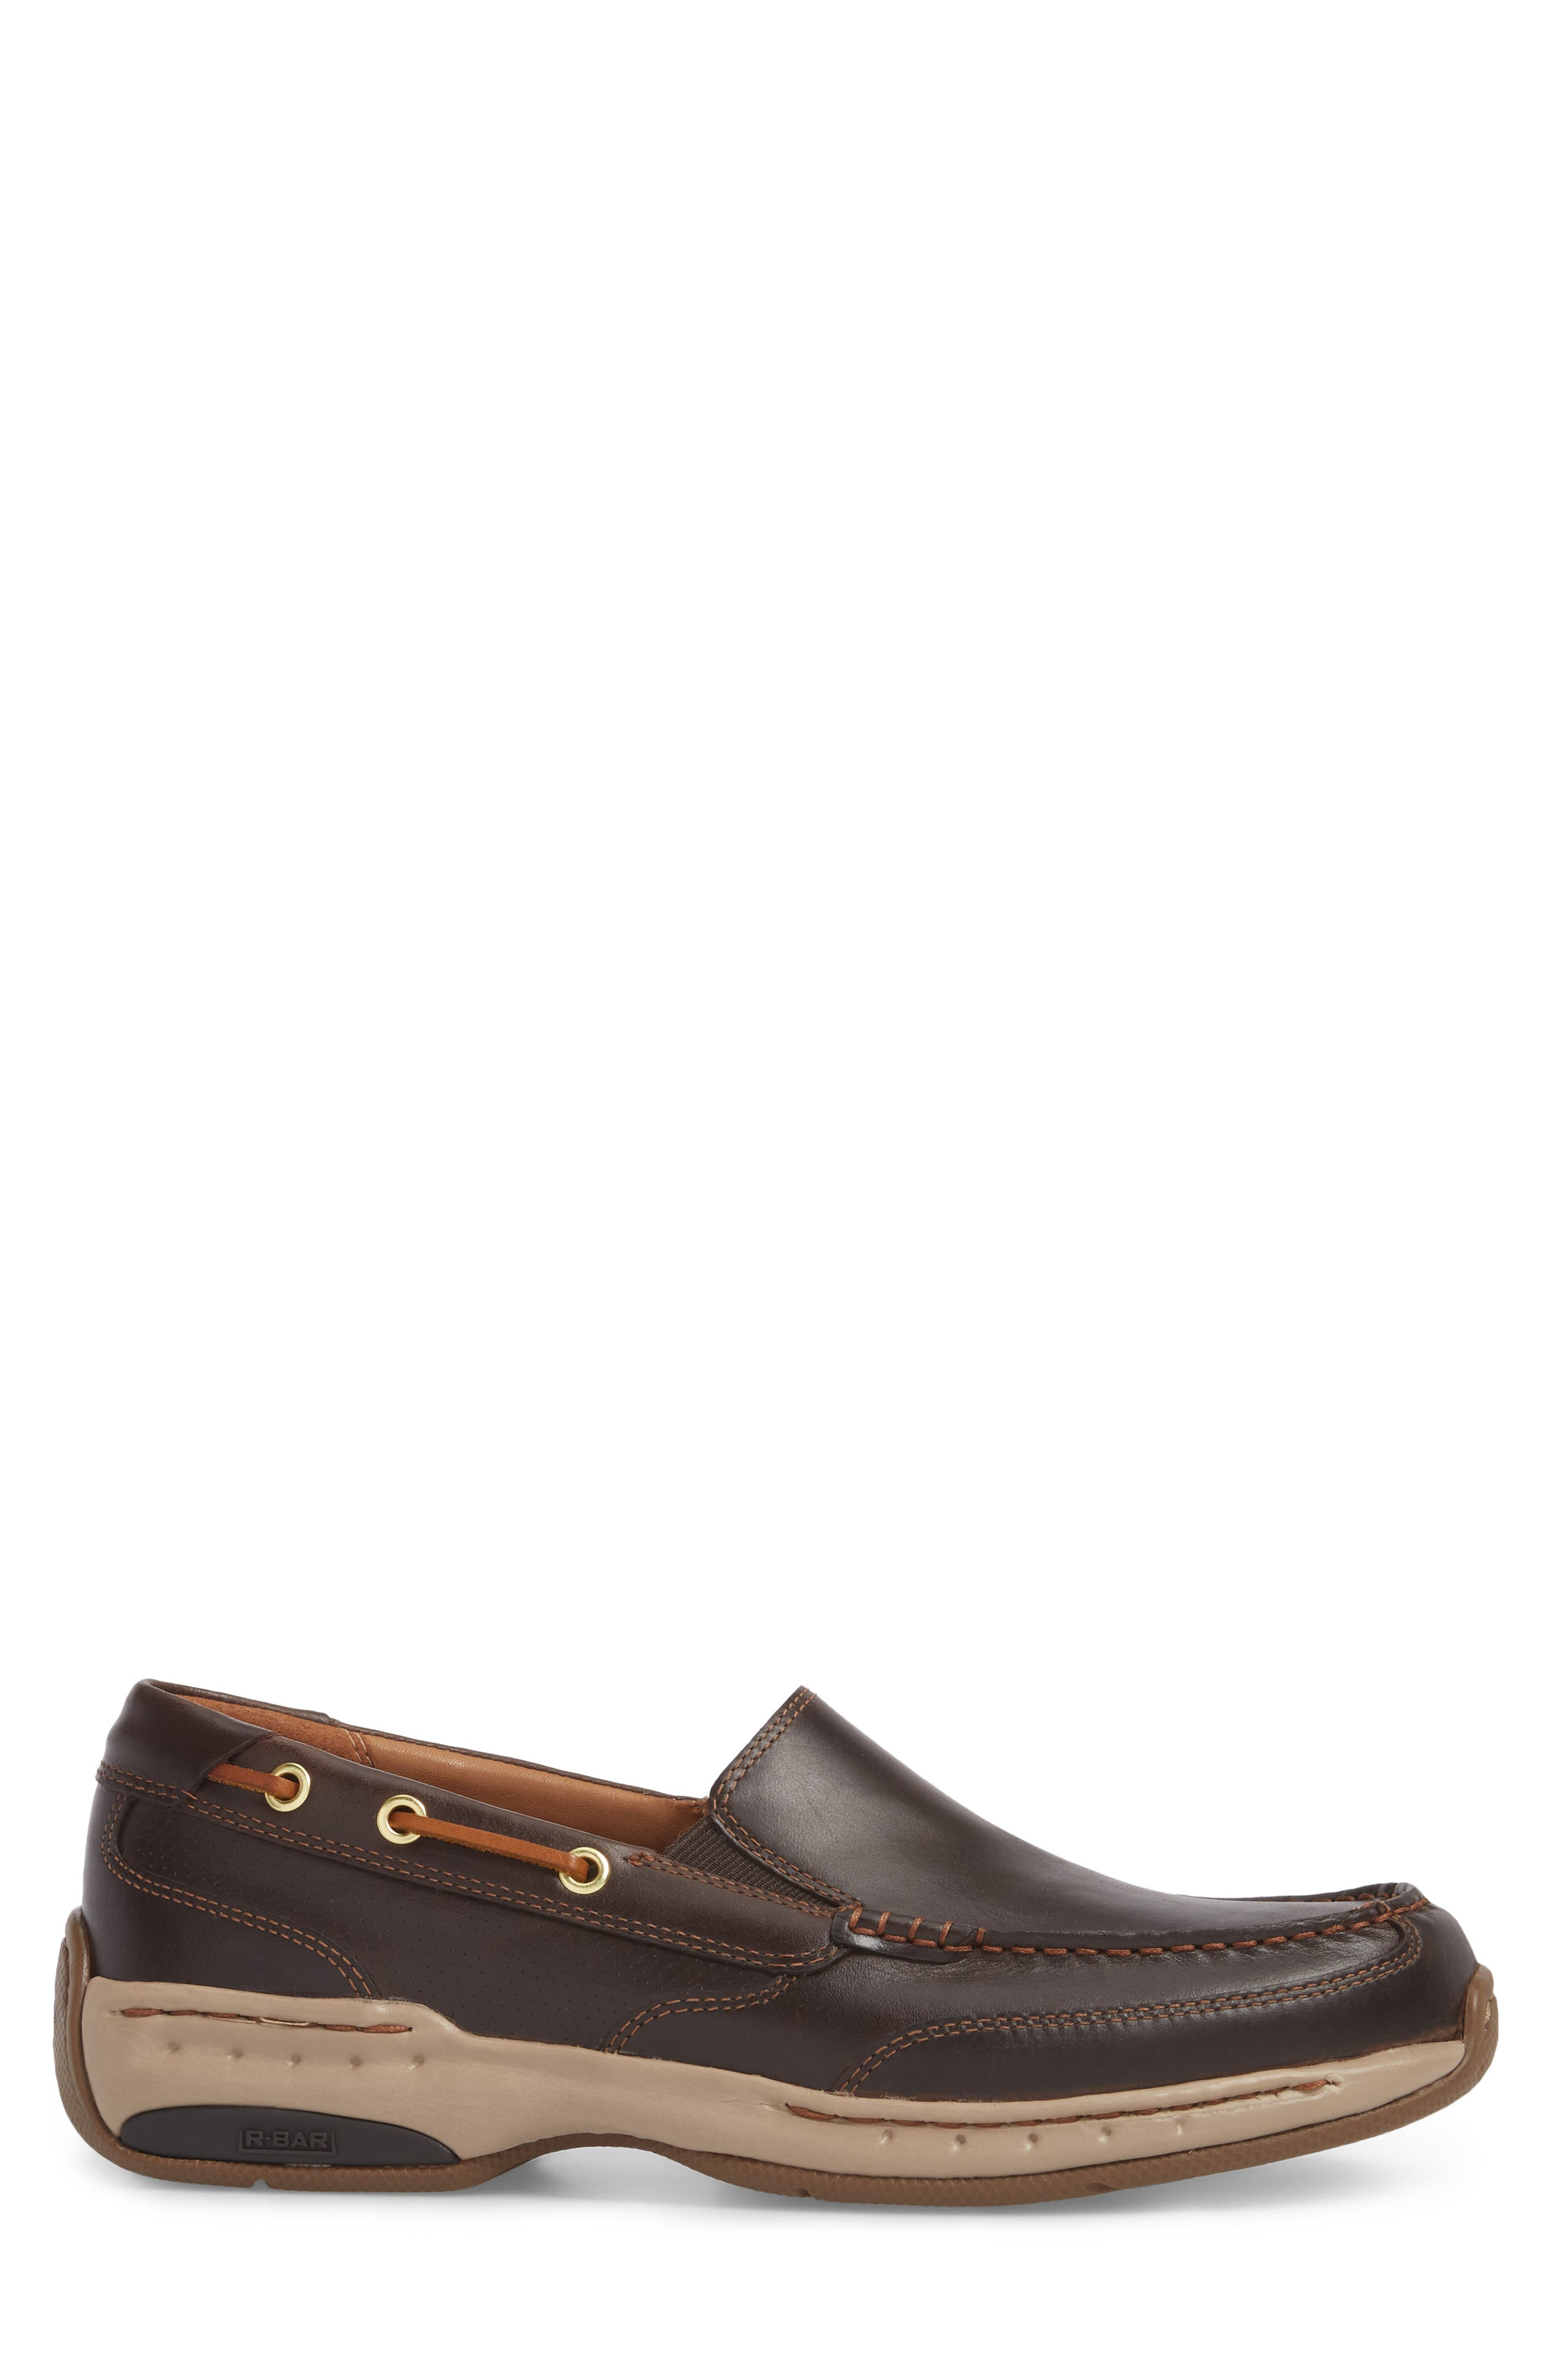 Waterford Water Resistant Slip-On,                             Alternate thumbnail 3, color,                             Tan Leather